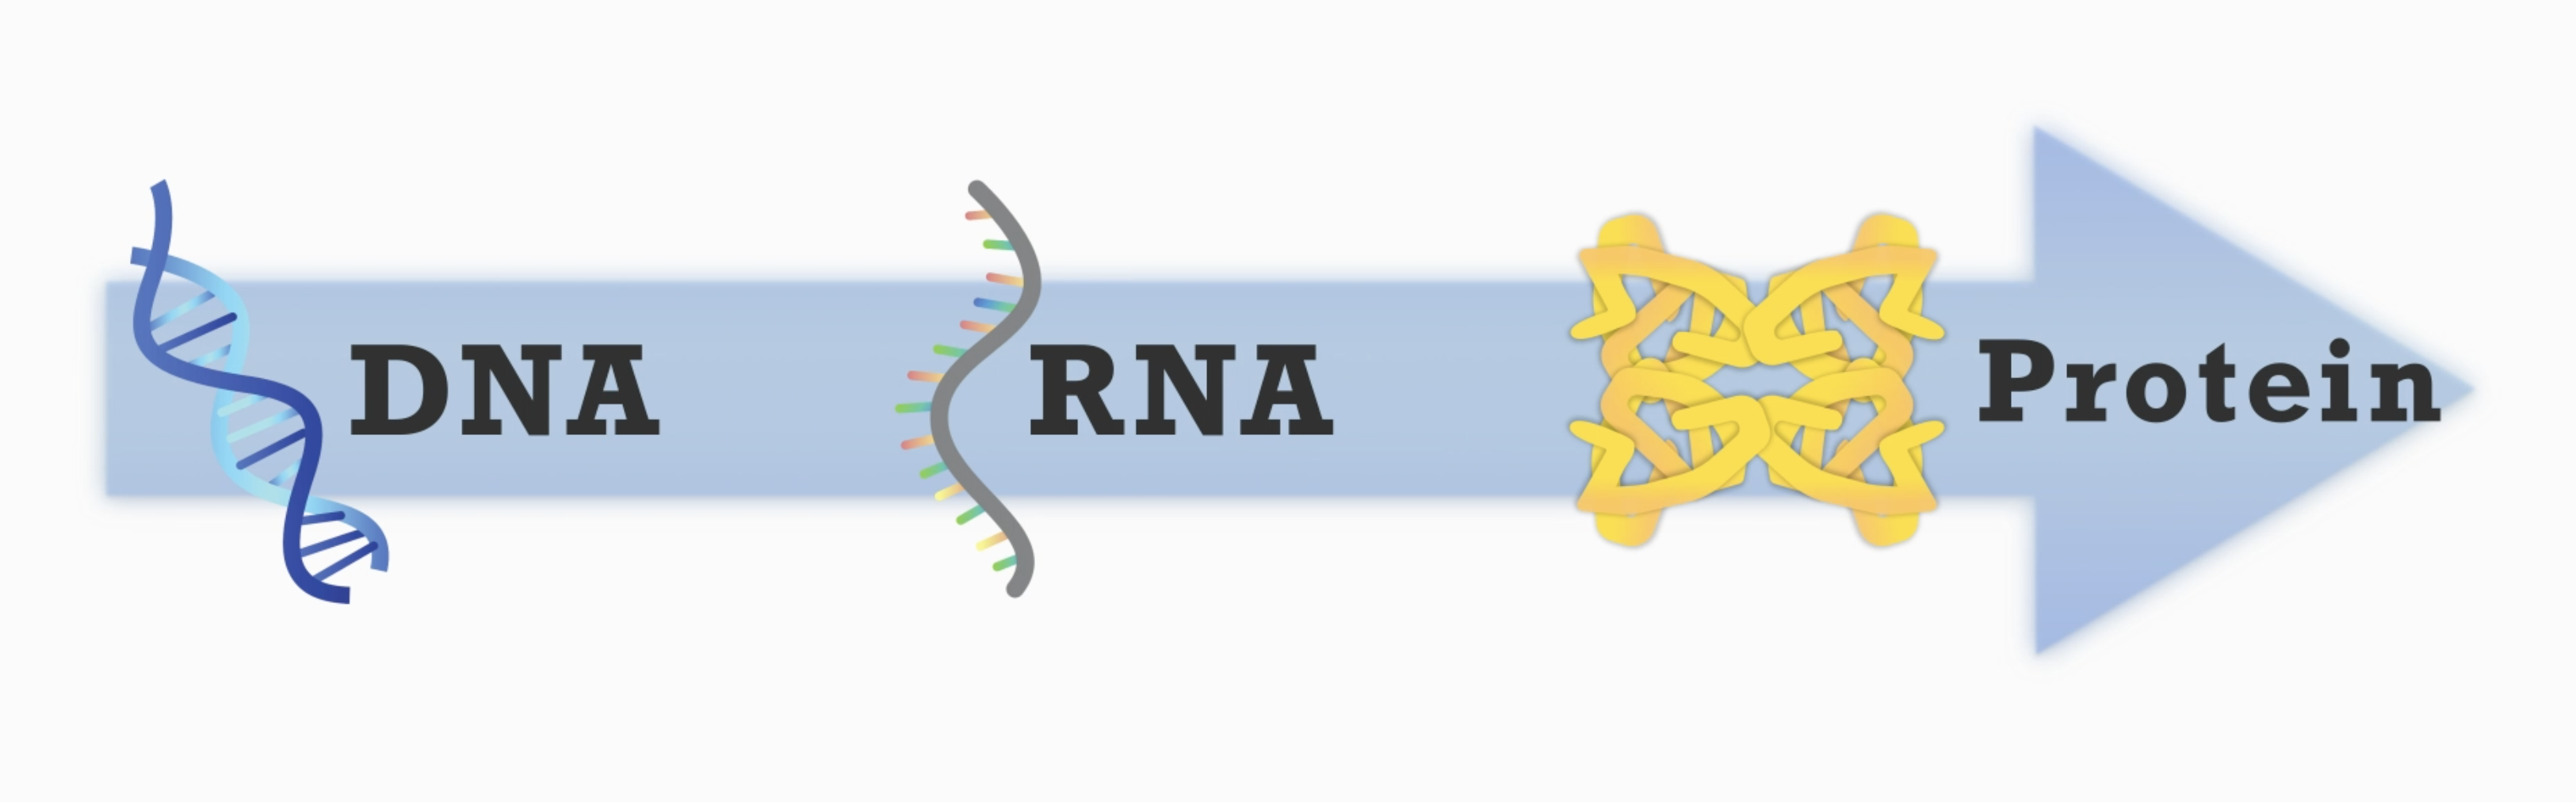 dna_rna_protein.png